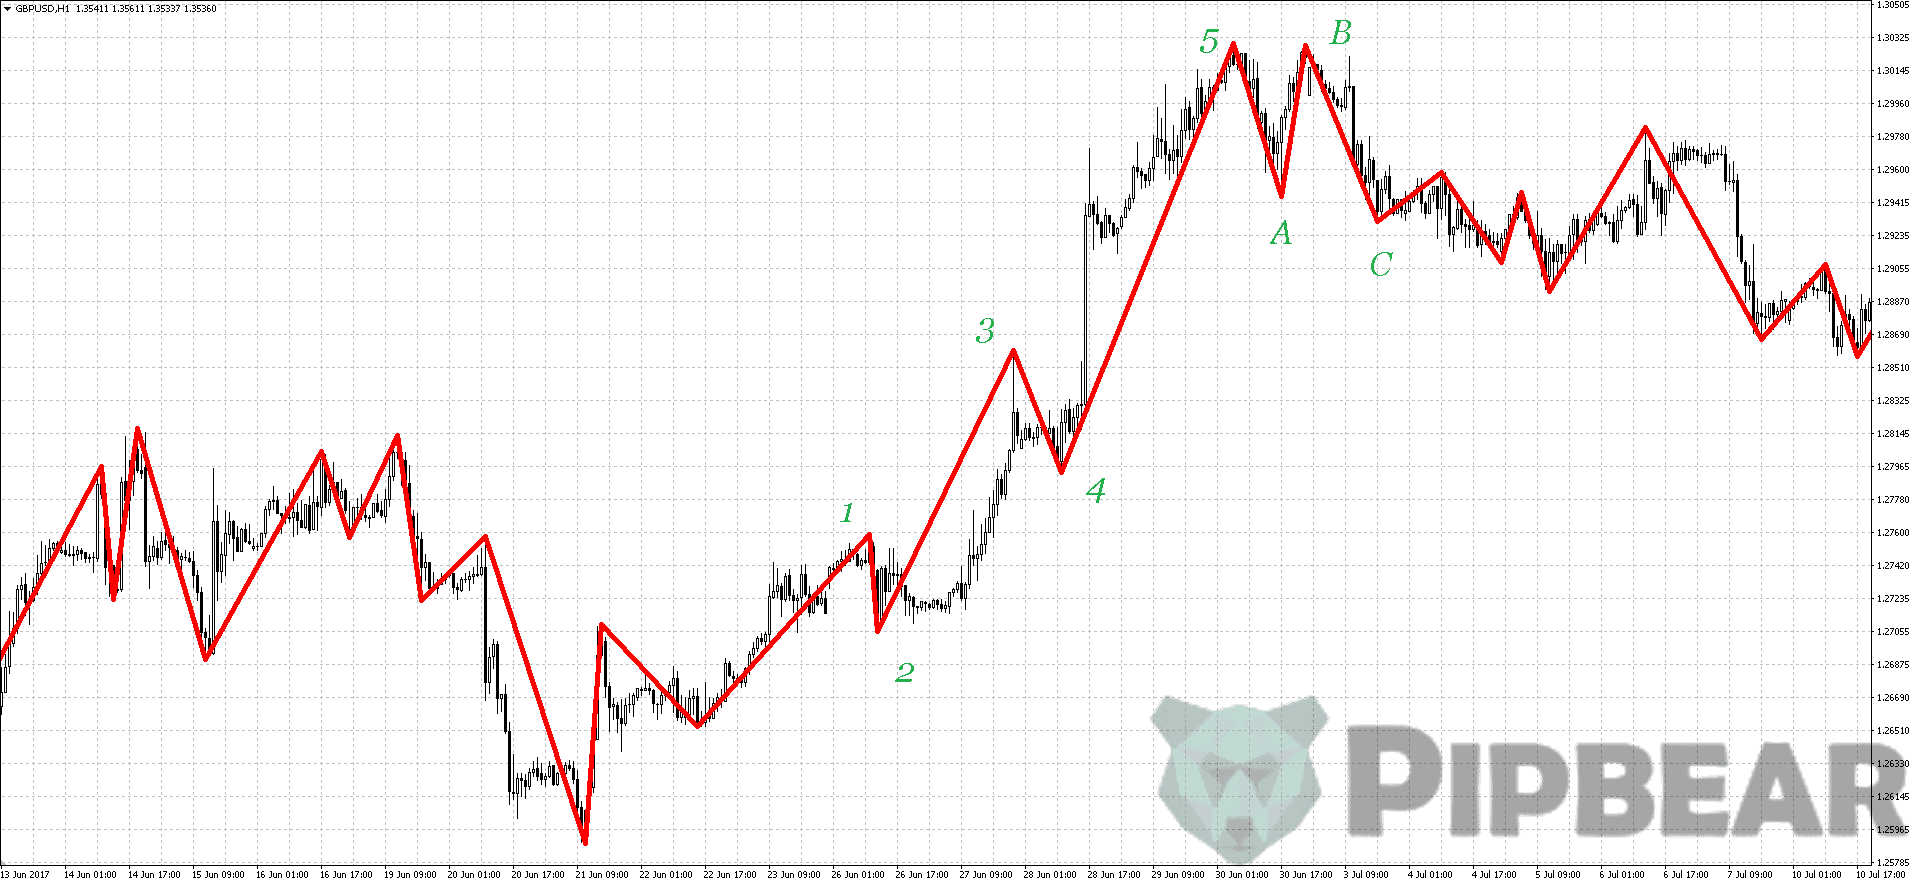 Zig Zag Indicator Trading Rules & Tips - Video Tutorial